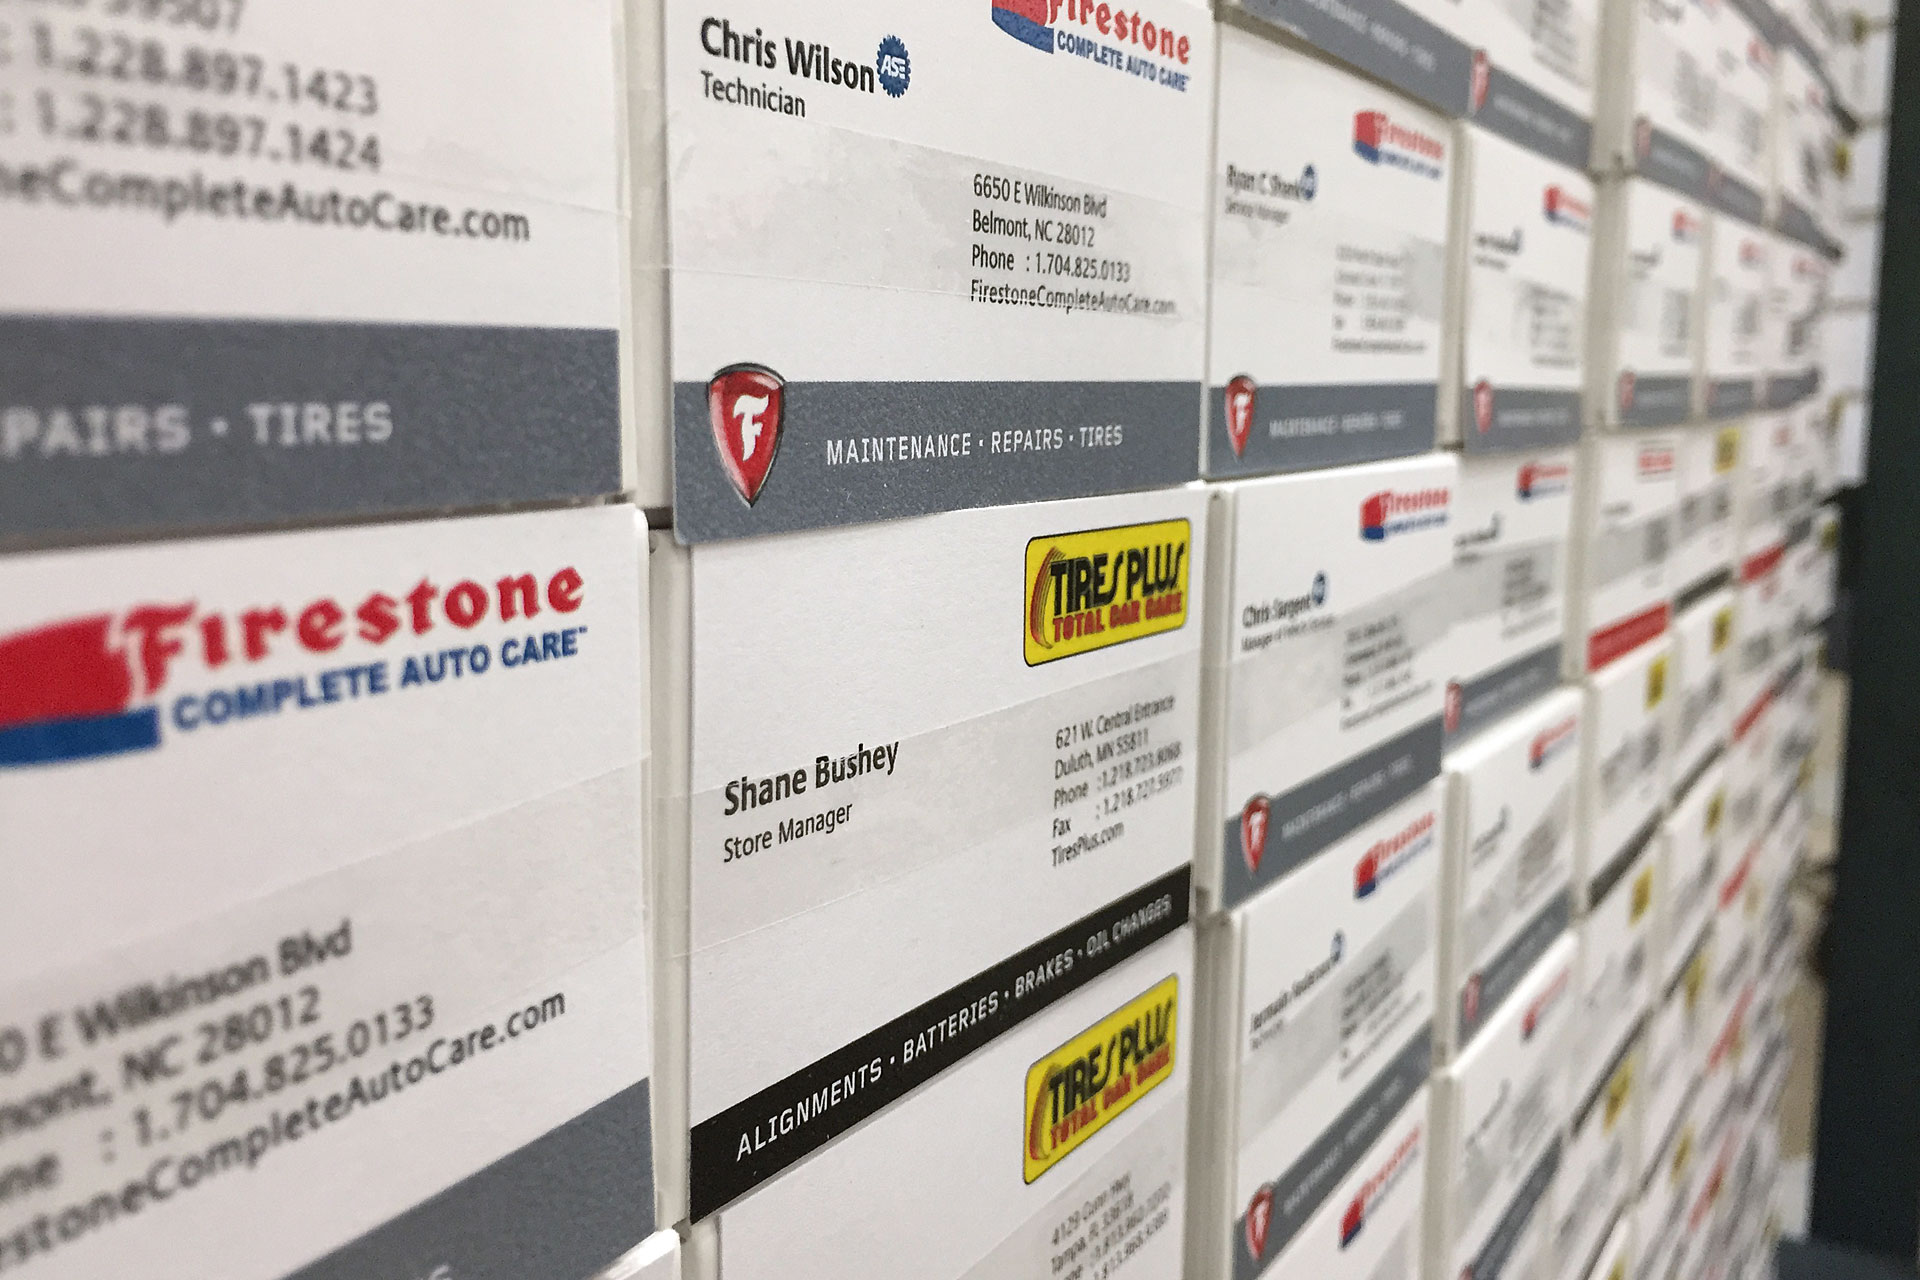 Boxed Pre-printed Business Cards in Warehouse